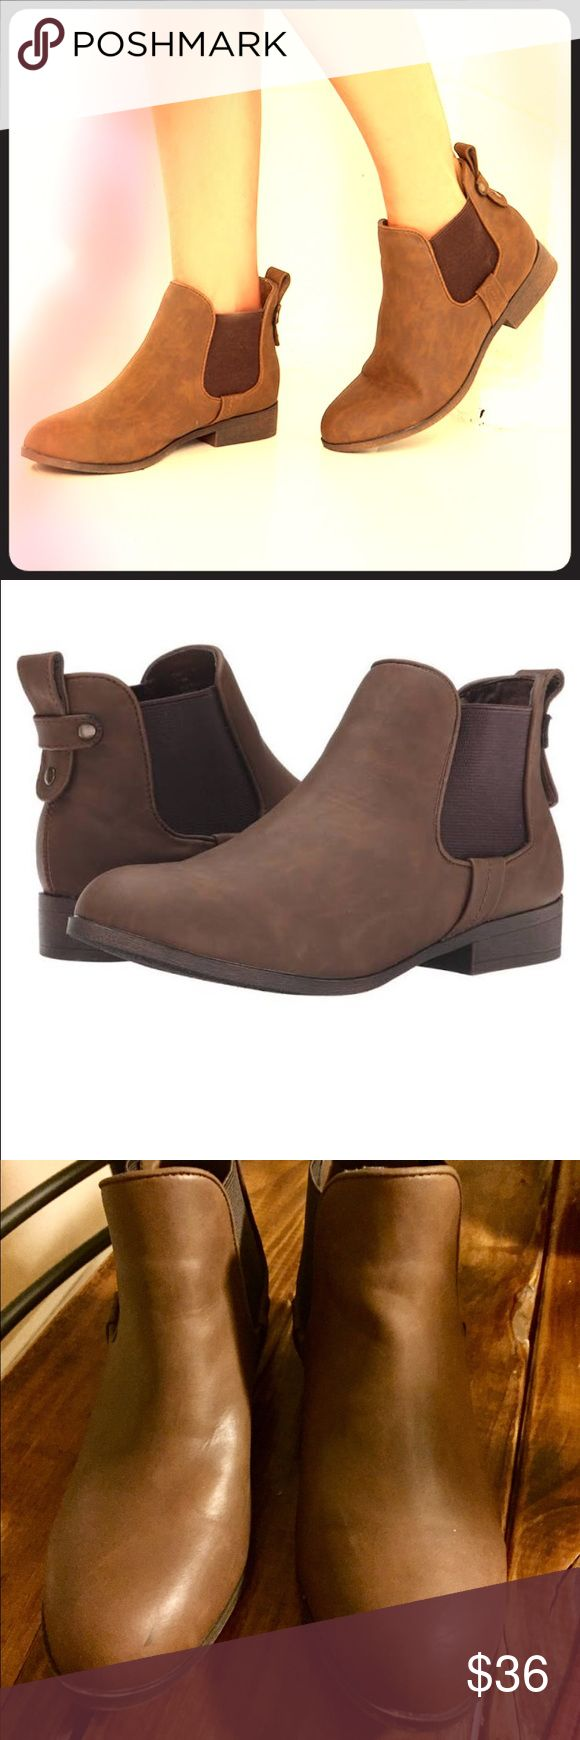 Madden Girl Brown ankle boots 7.5 Super cute and comfy flat ankle booties! Worn once, too small for me Madden Girl Shoes Ankle Boots & Booties